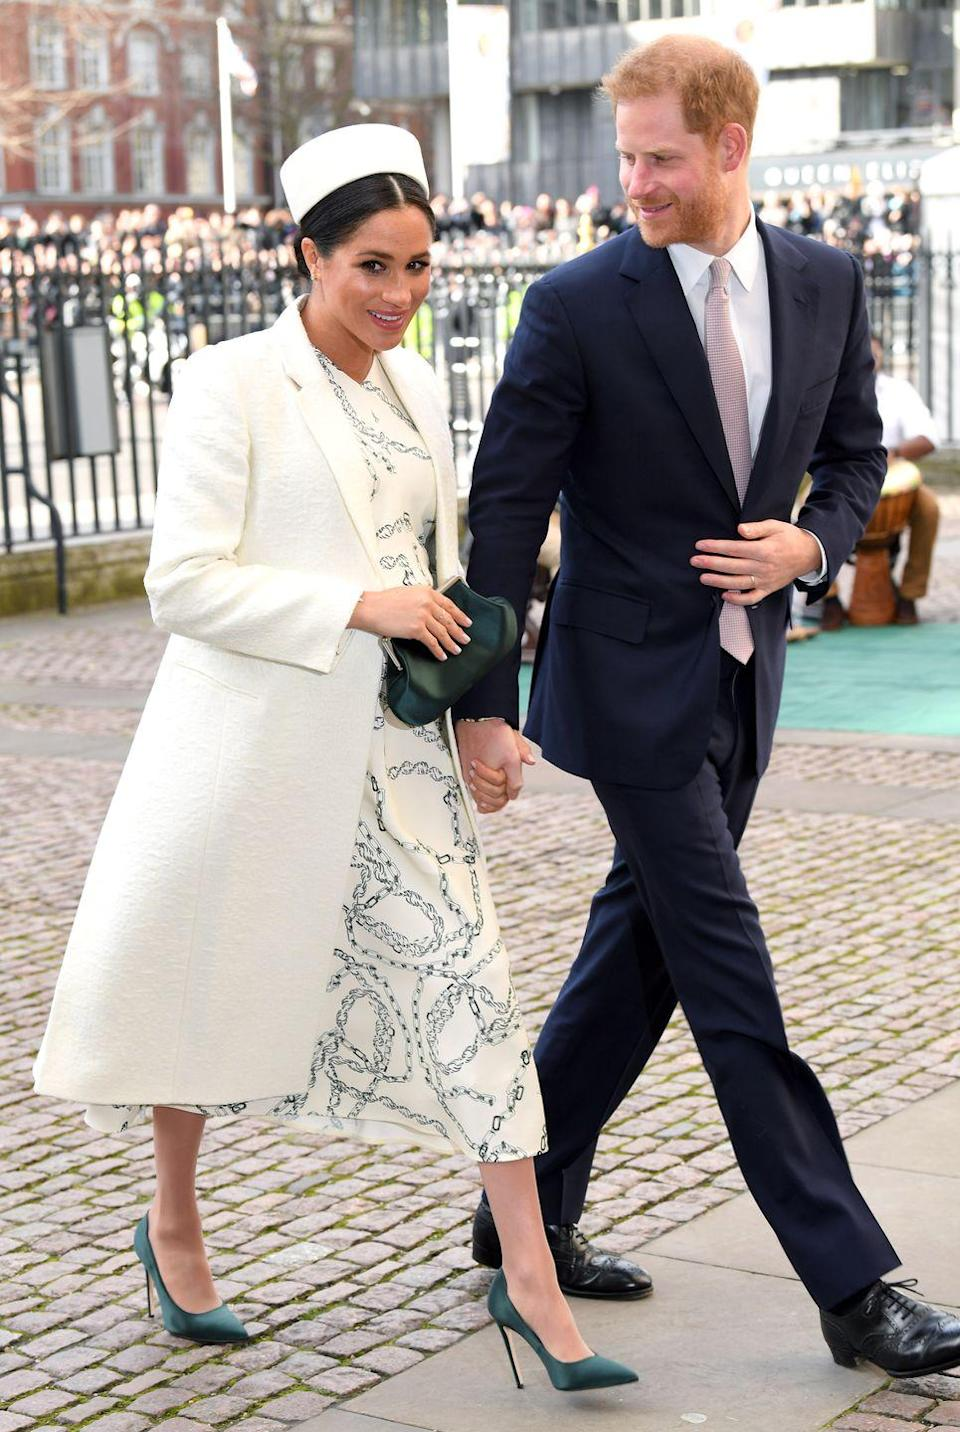 "<p>The Duke and Duchess of Sussex were attending a service in honor of <a href=""https://www.townandcountrymag.com/society/tradition/g26741707/royal-family-commonwealth-day-2019-photos/"" rel=""nofollow noopener"" target=""_blank"" data-ylk=""slk:Commonwealth Day."" class=""link rapid-noclick-resp"">Commonwealth Day. </a></p>"